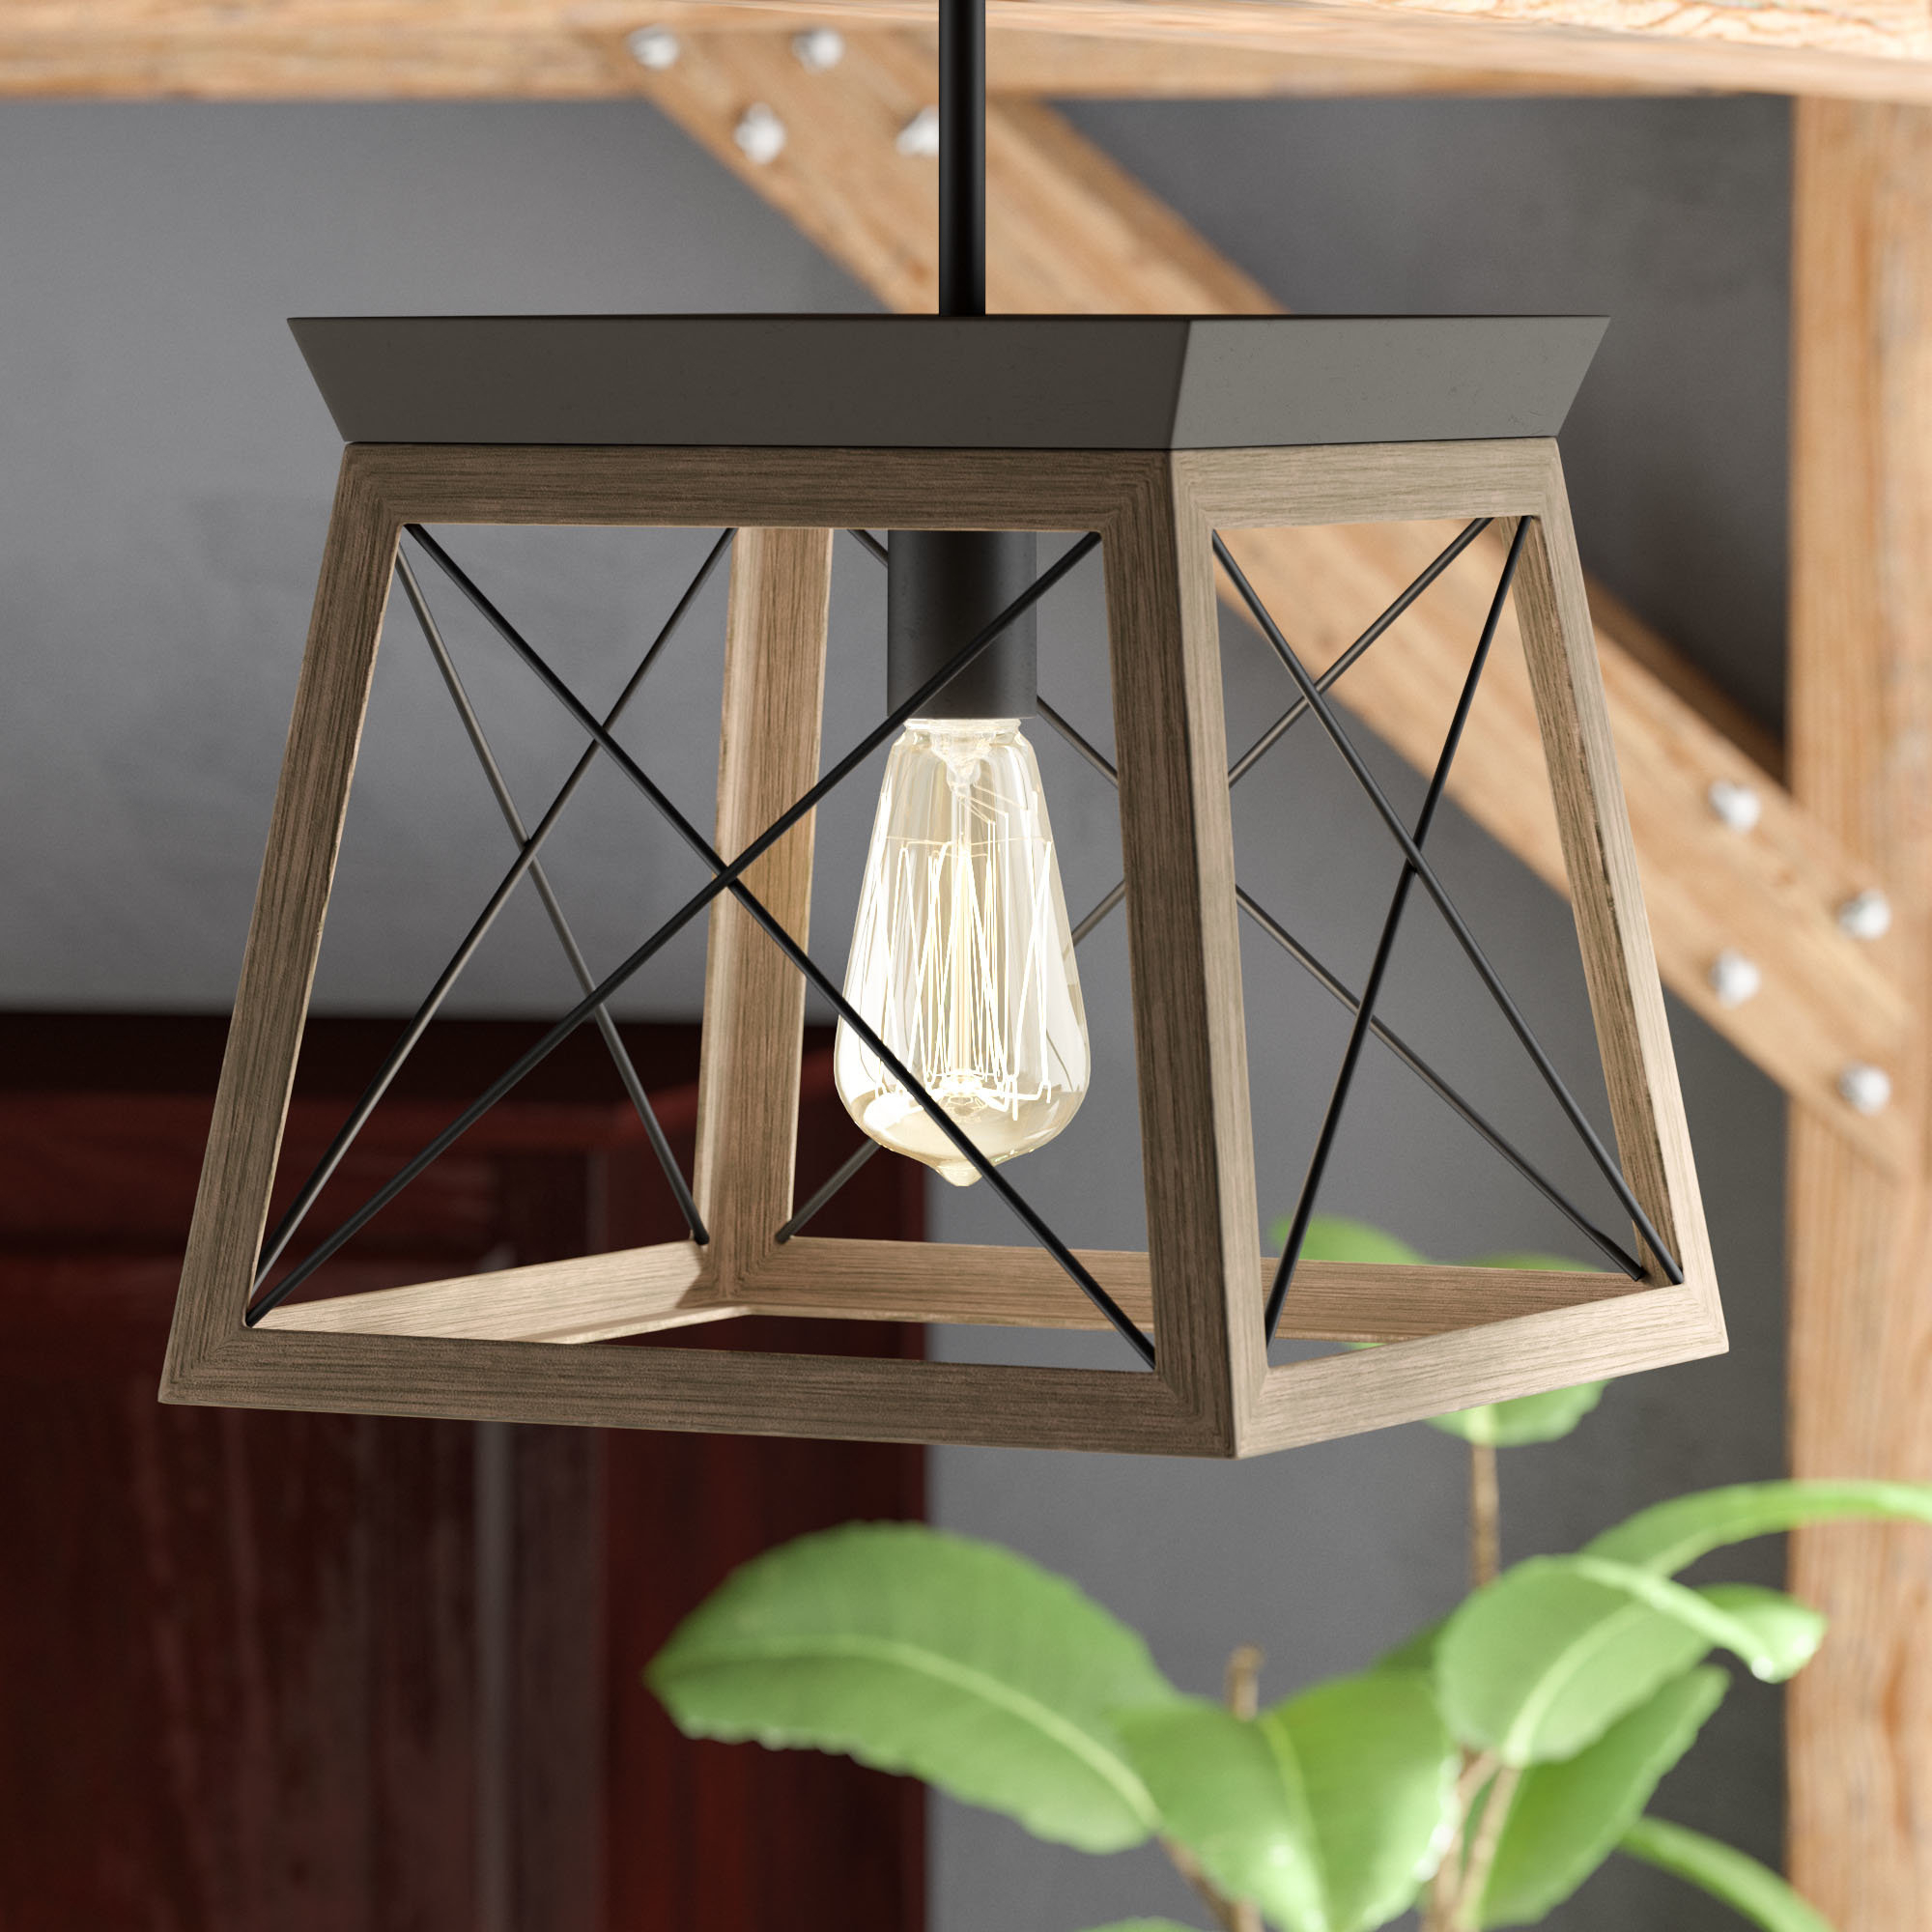 Delon 1 Light Lantern Geometric Pendant Intended For Delon 1 Light Lantern Geometric Pendants (Gallery 1 of 30)